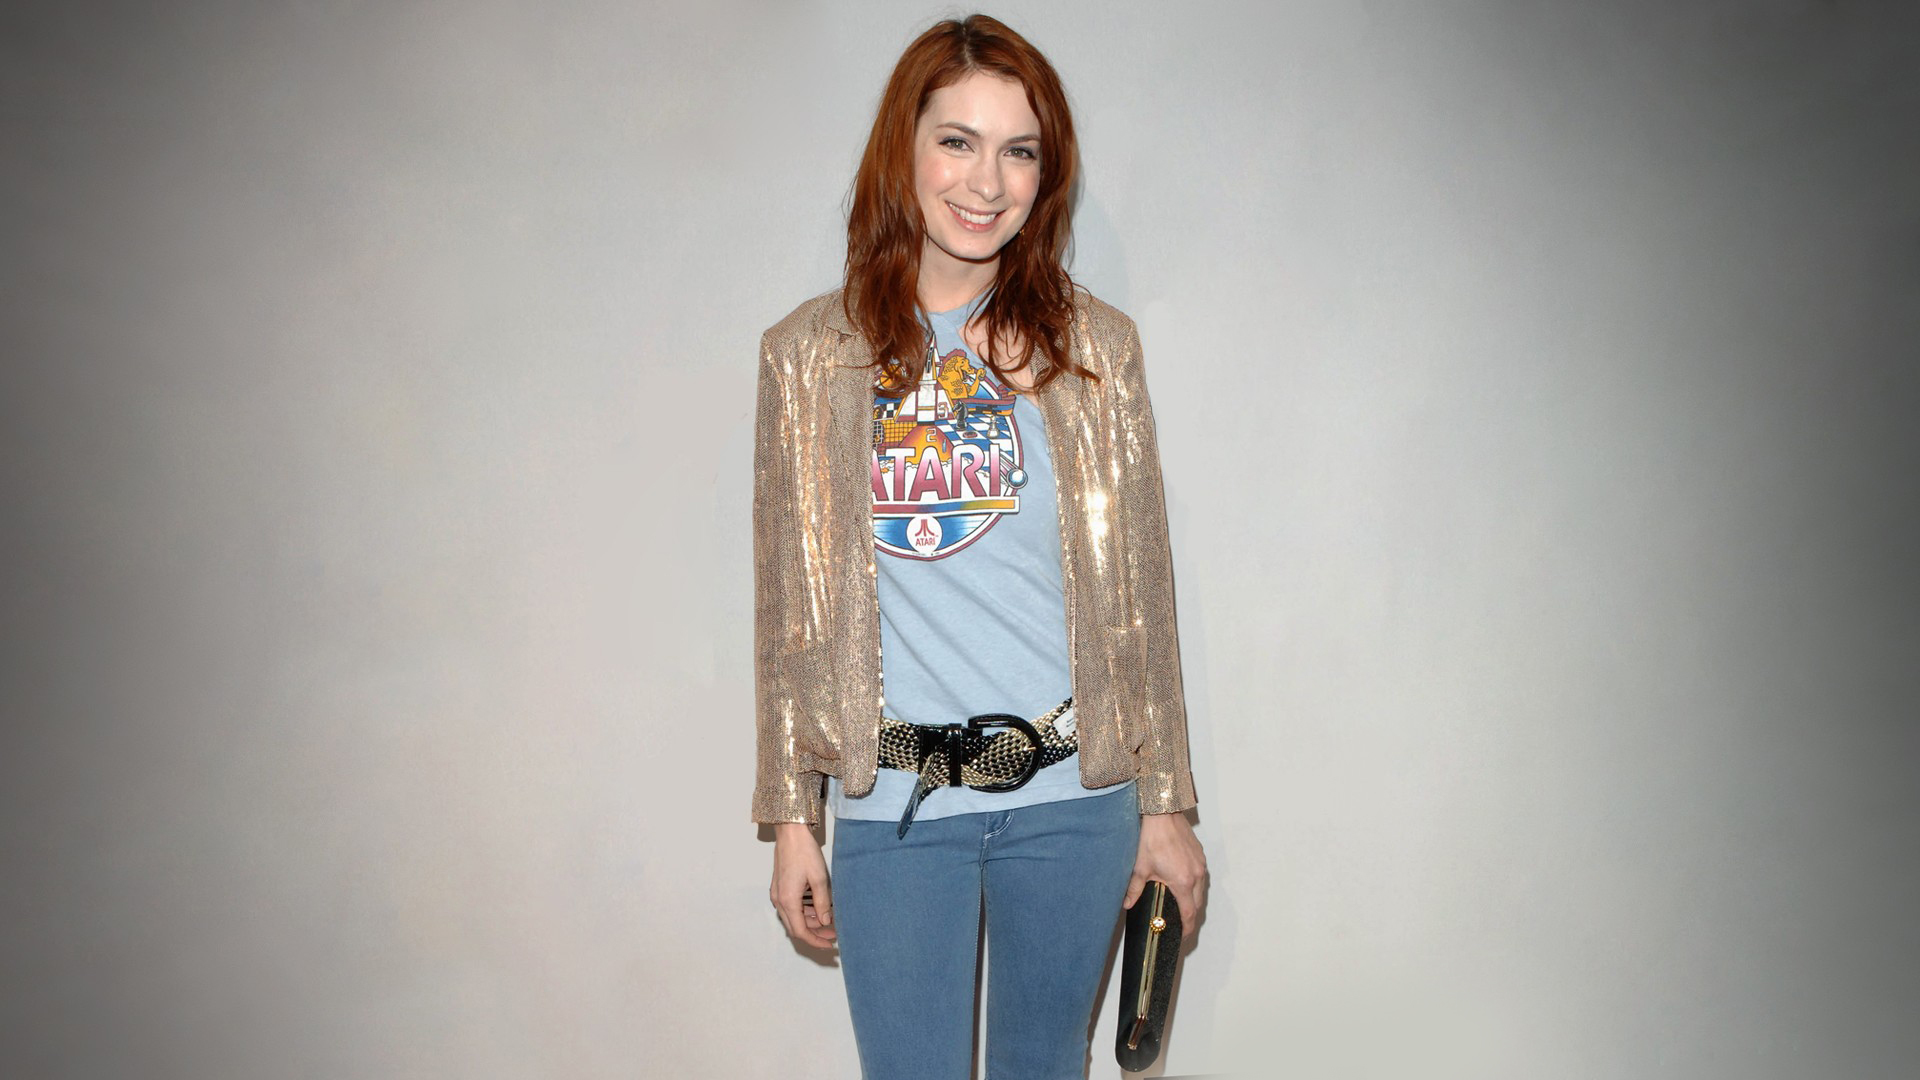 Felicia Day Hd Wallpaper